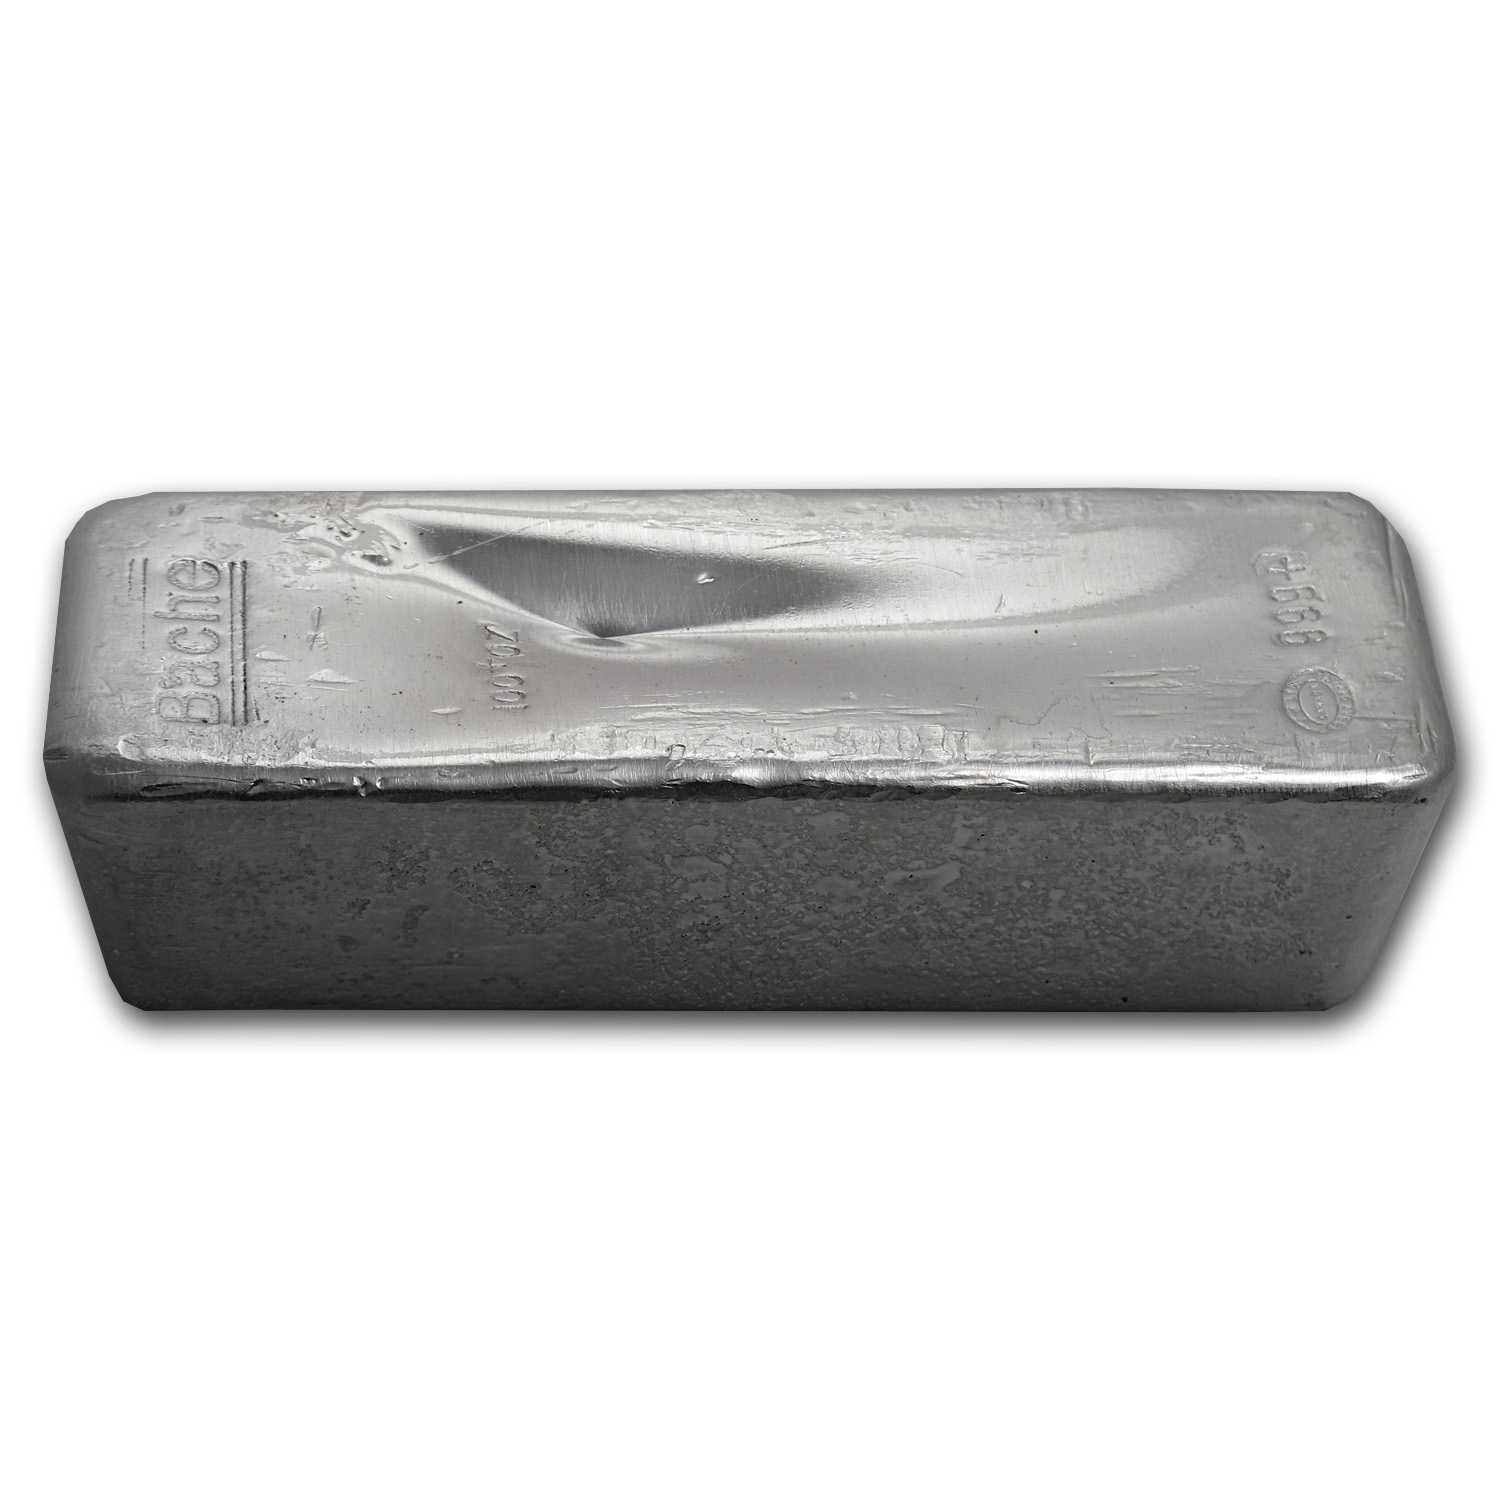 100 oz Silver Bars - Johnson Matthey (Bache)